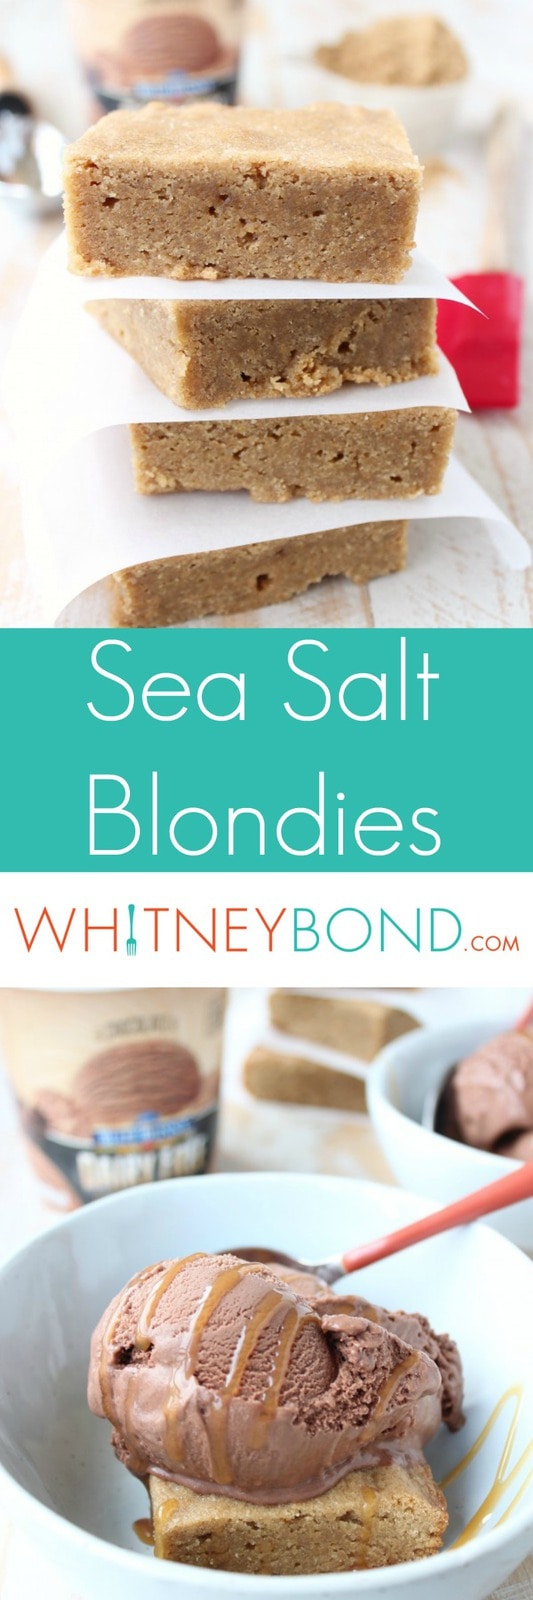 Sea Salt Blondies Recipe